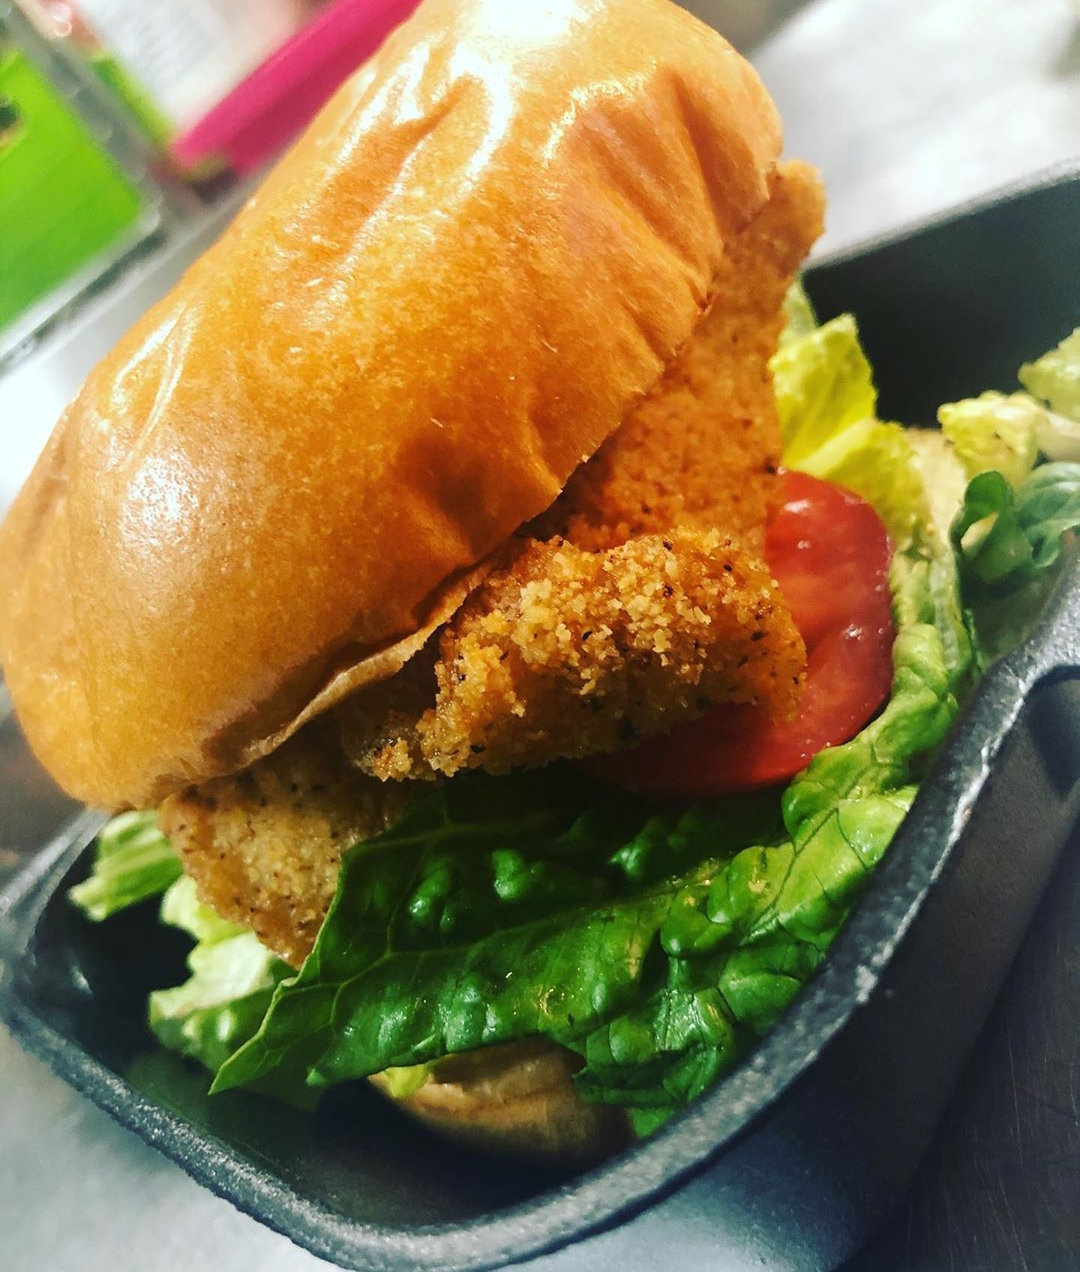 fish sandwich with lettuce, tomatoe in a to go container